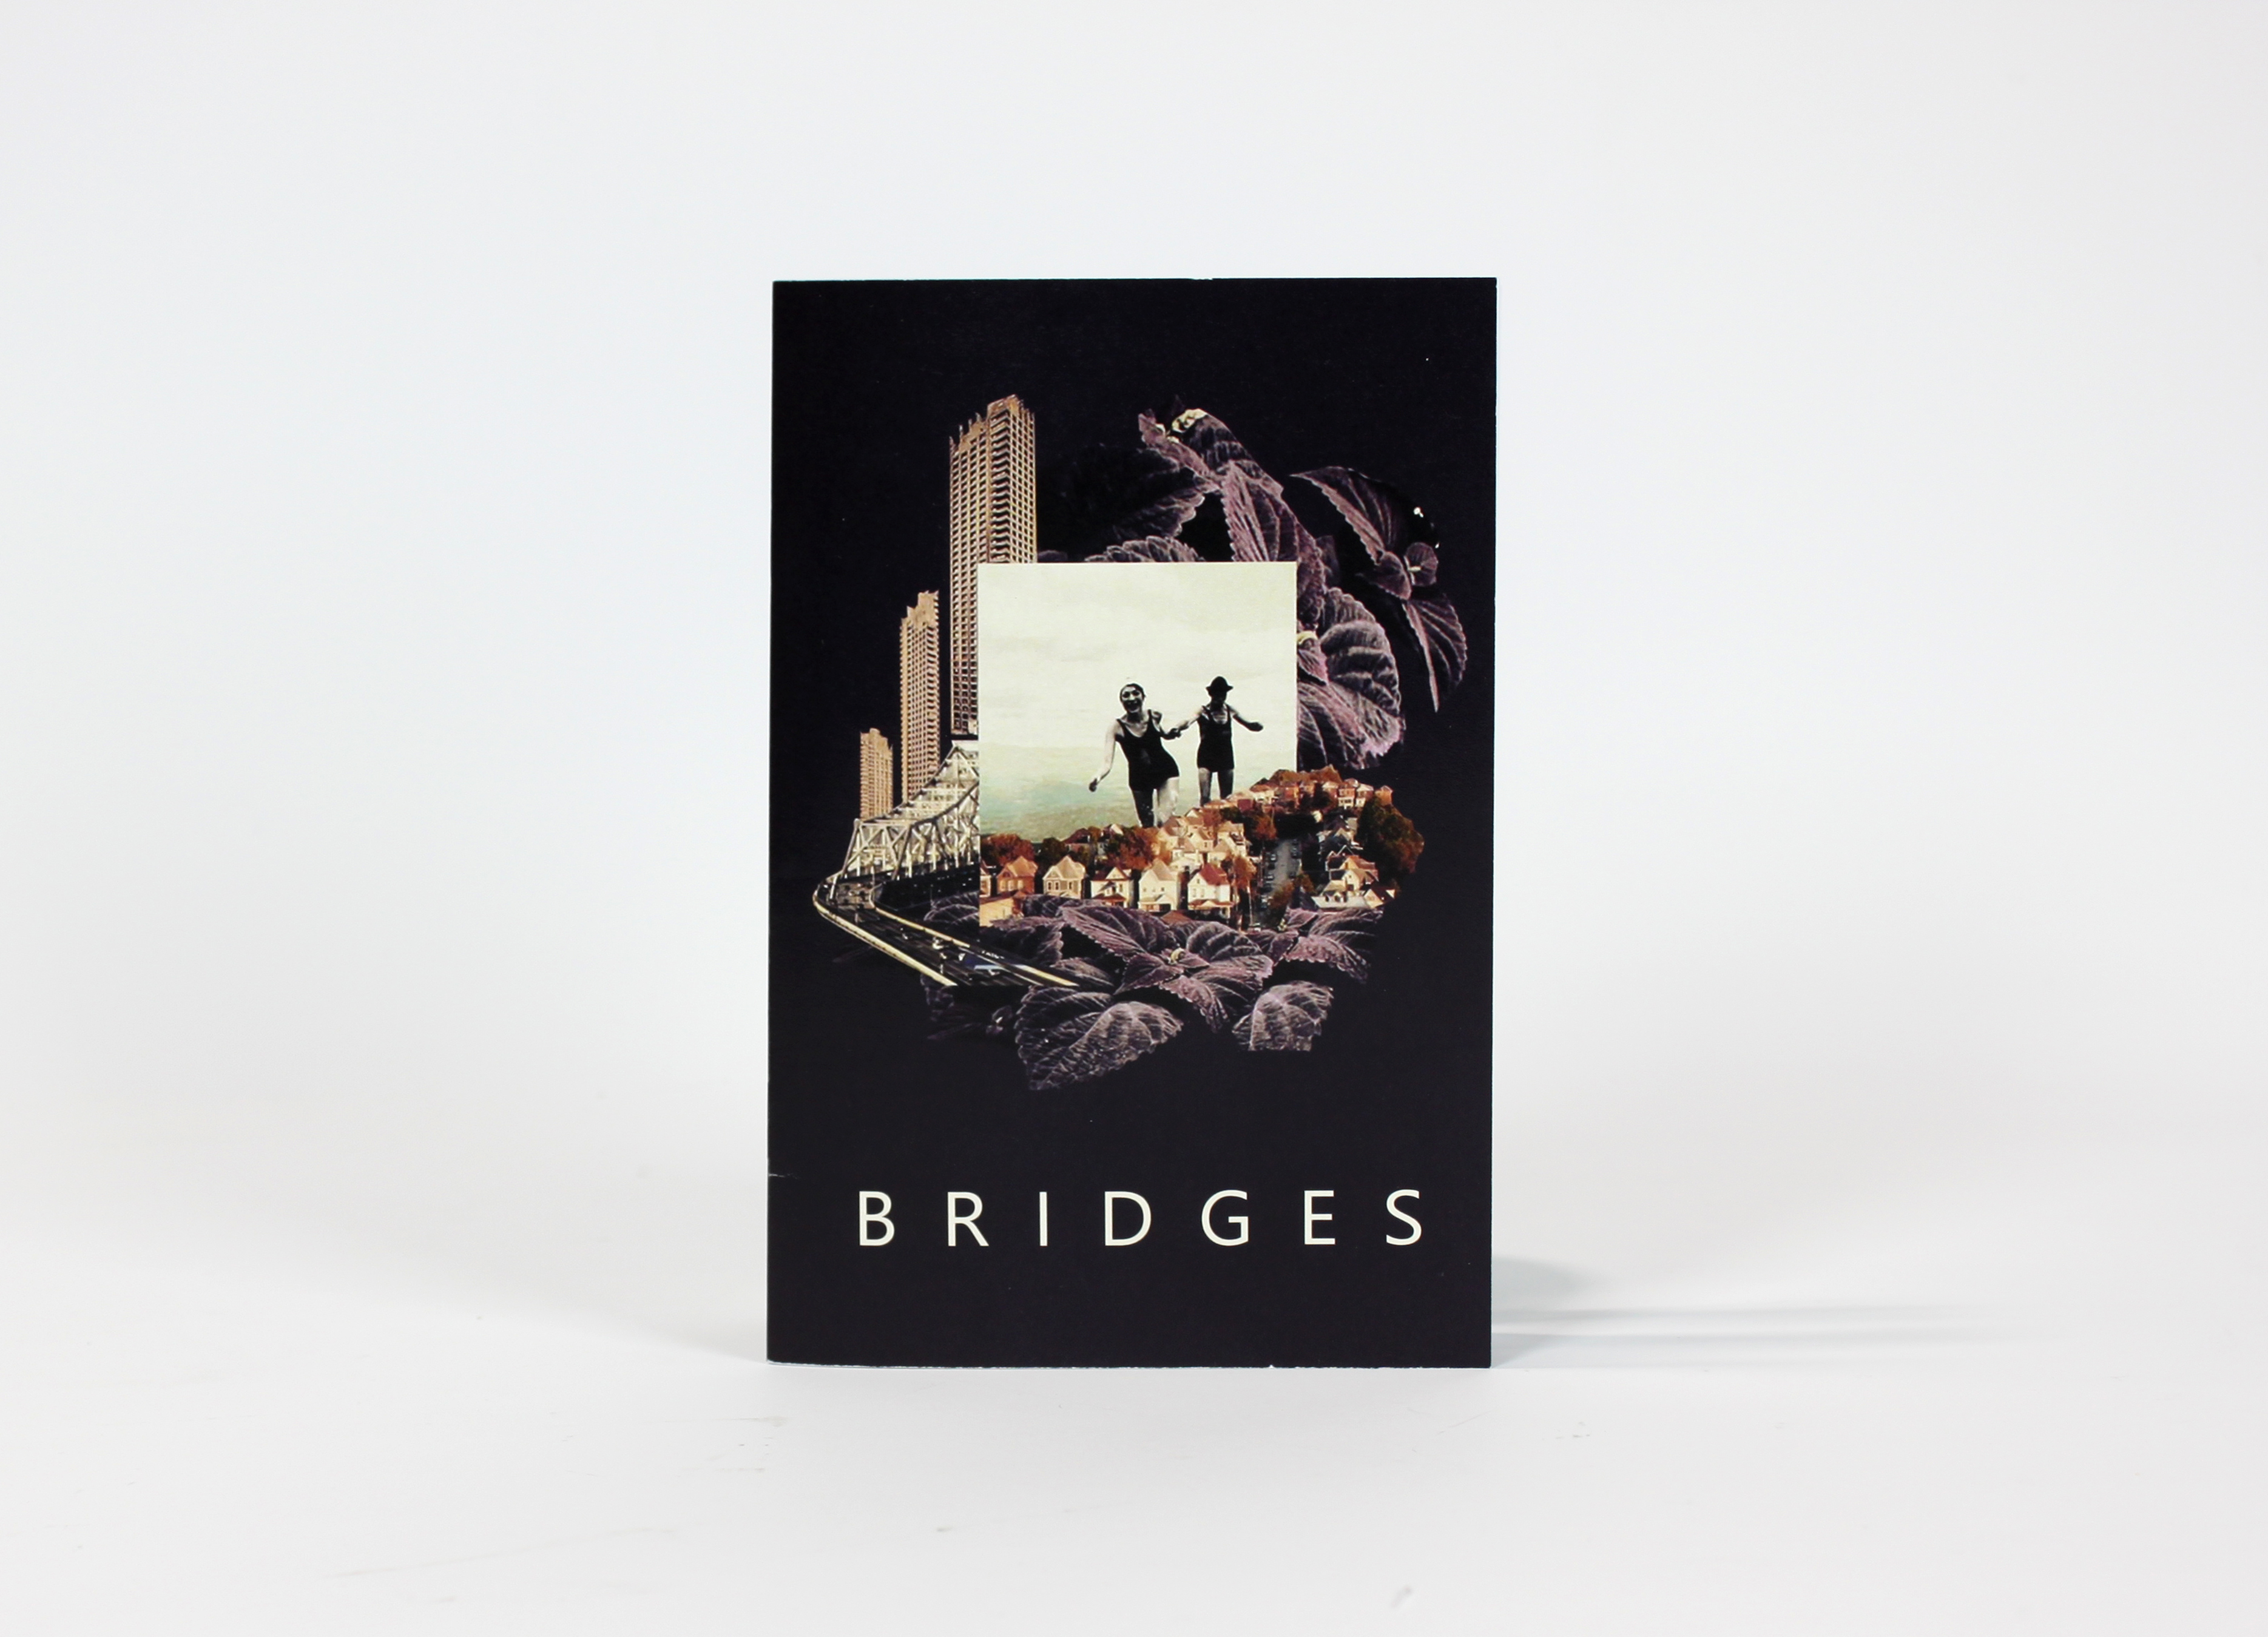 Bridges (Compilation)